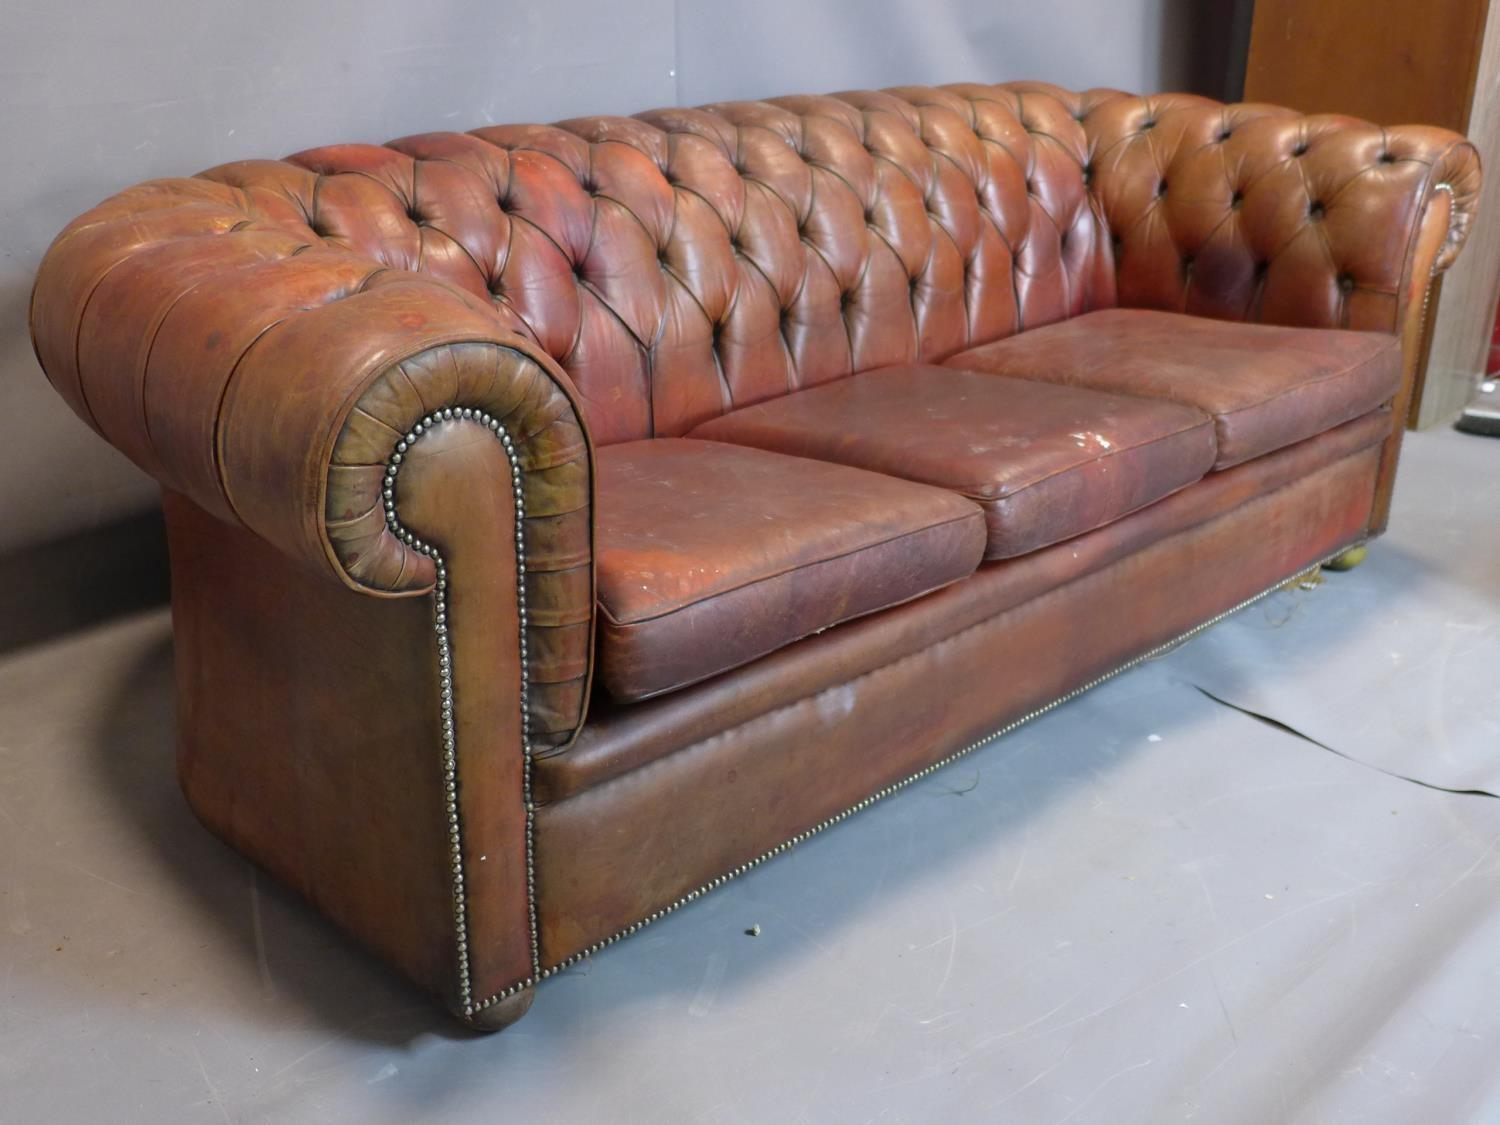 Lot 26 - A three seater leather Chesterfield sofa, with button back upholstery, heavily worn